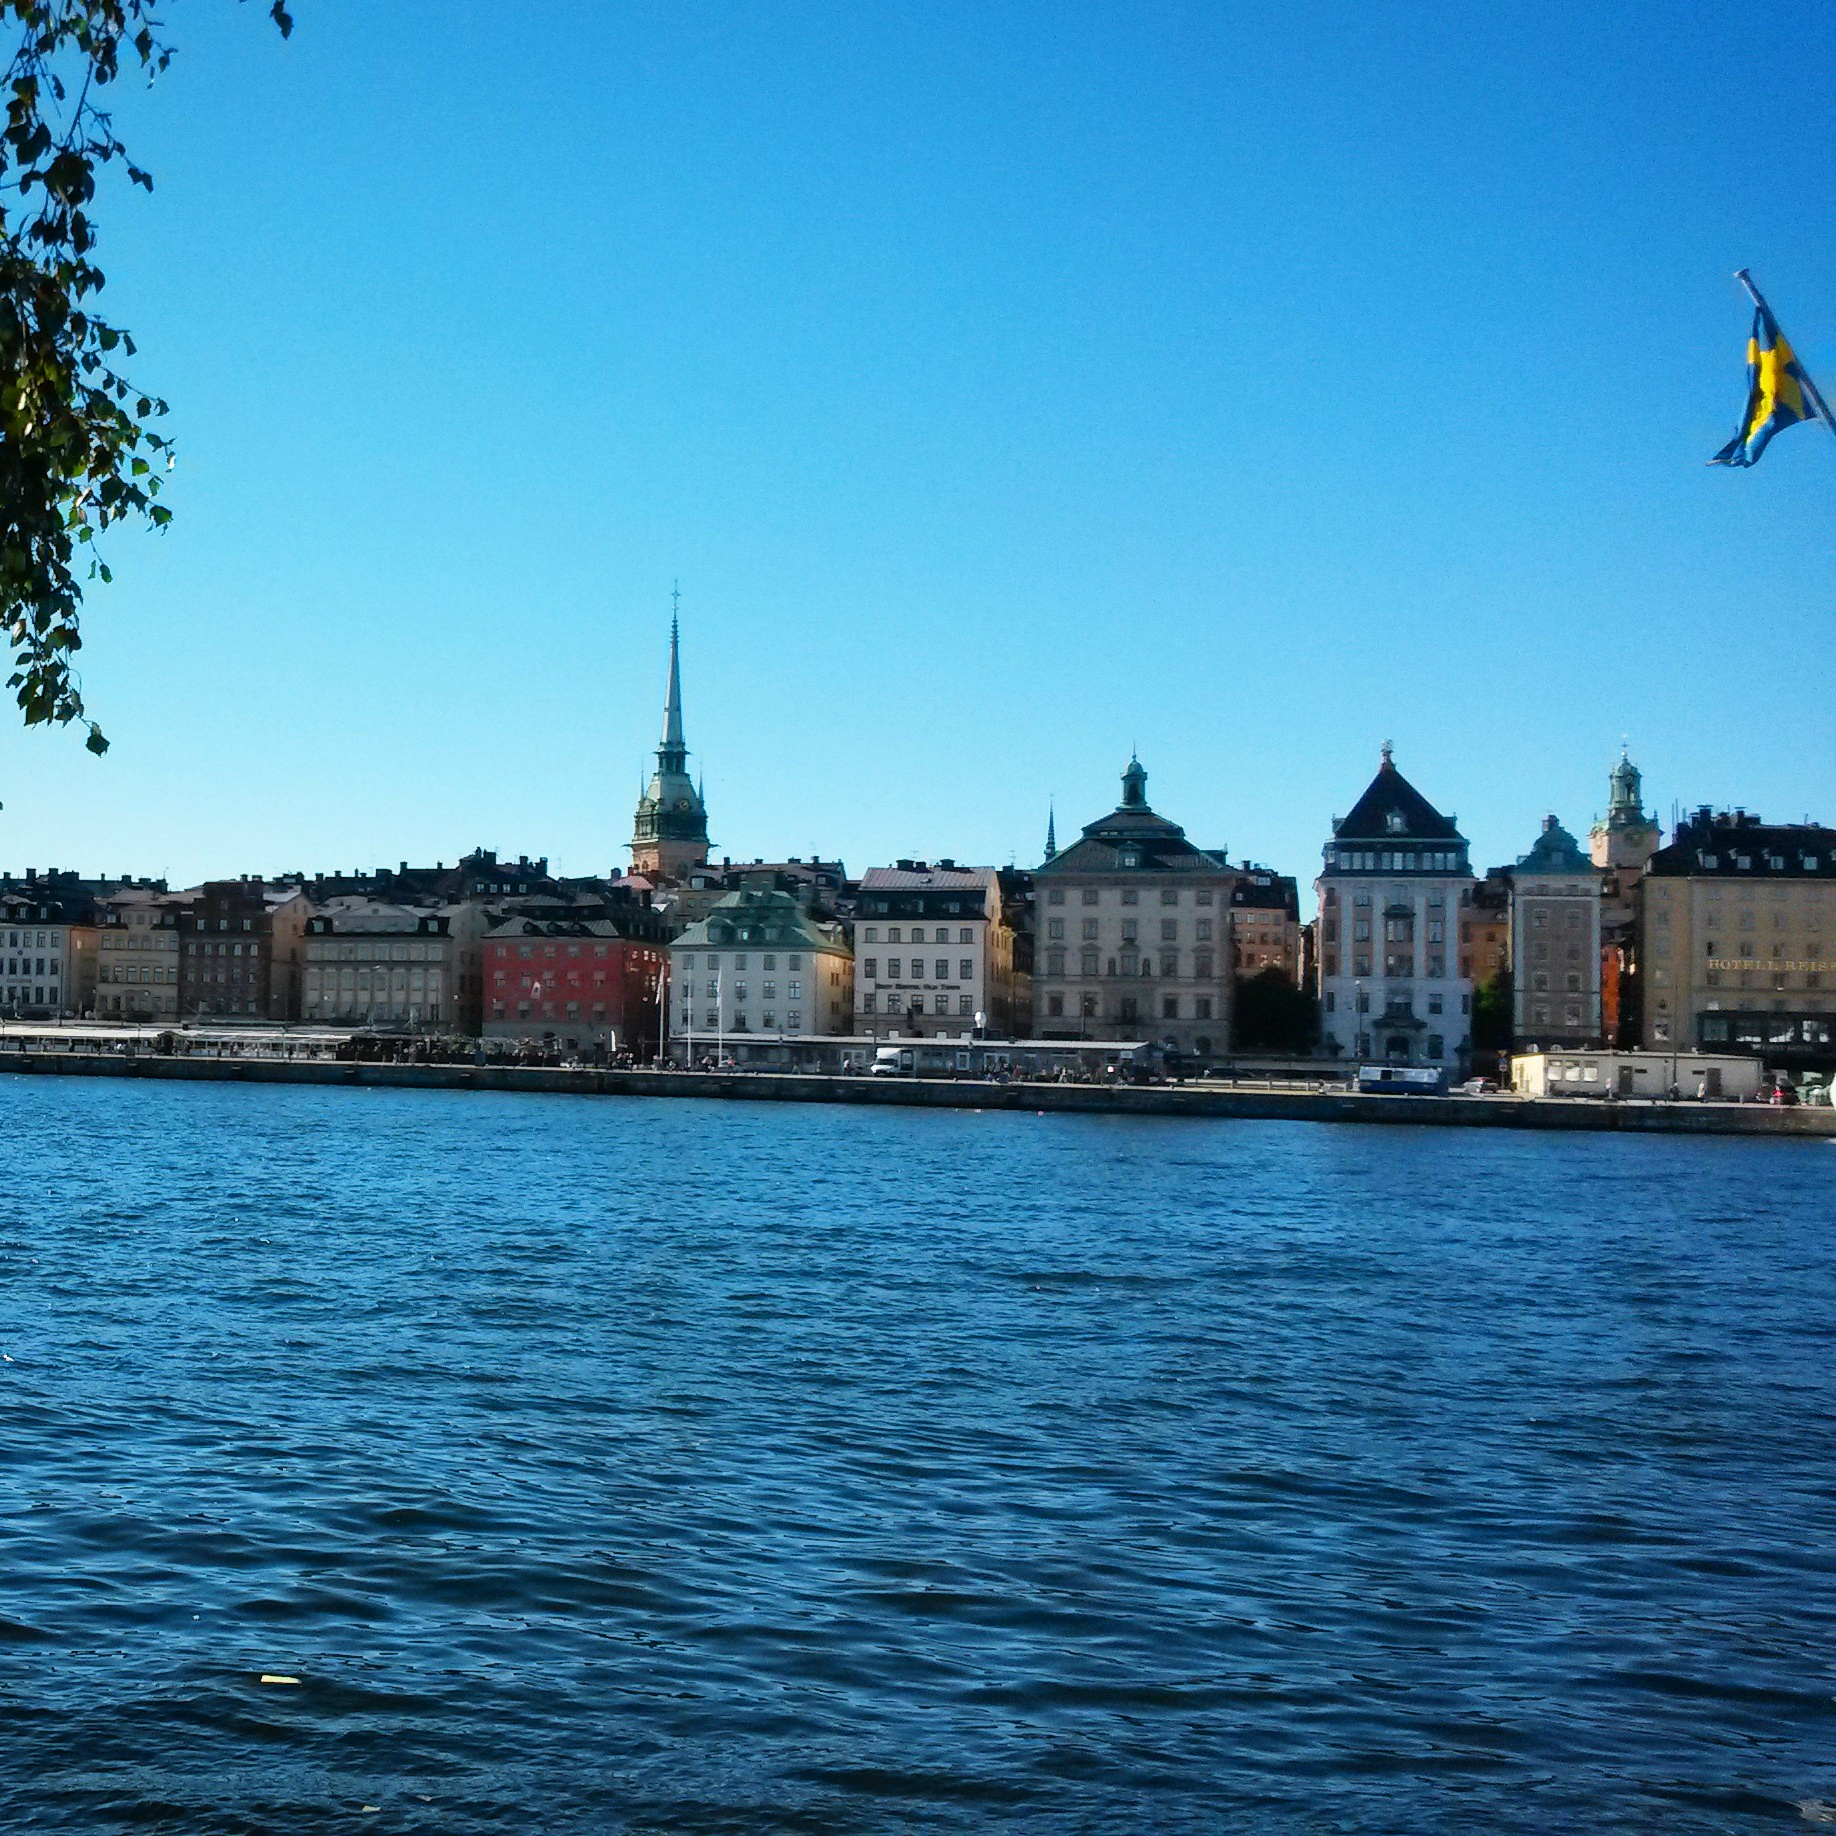 View from Skeppsholmen island